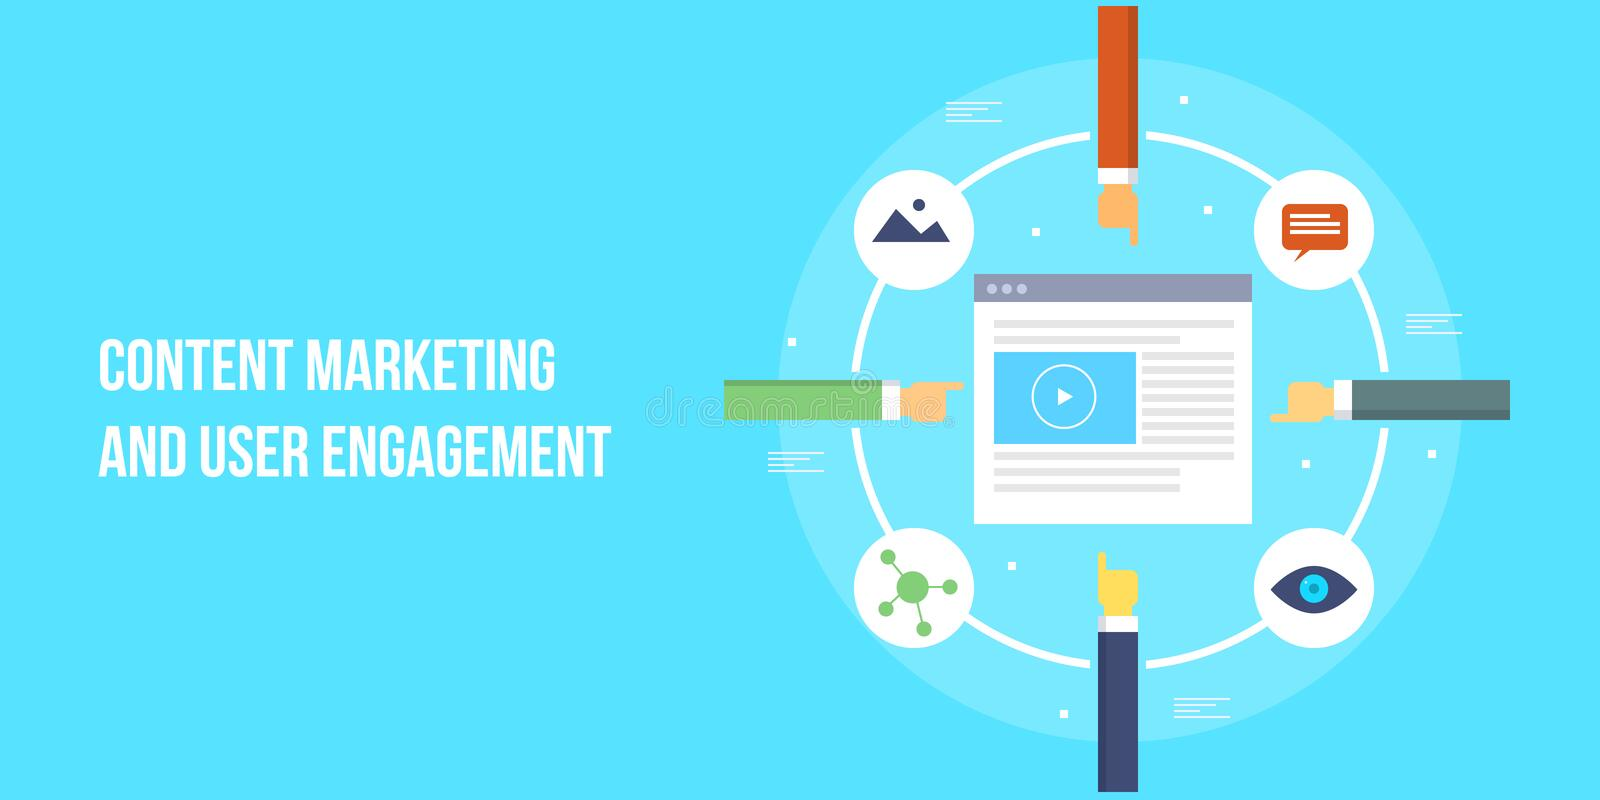 Producing Quality Content For User Engagement, Content Marketing